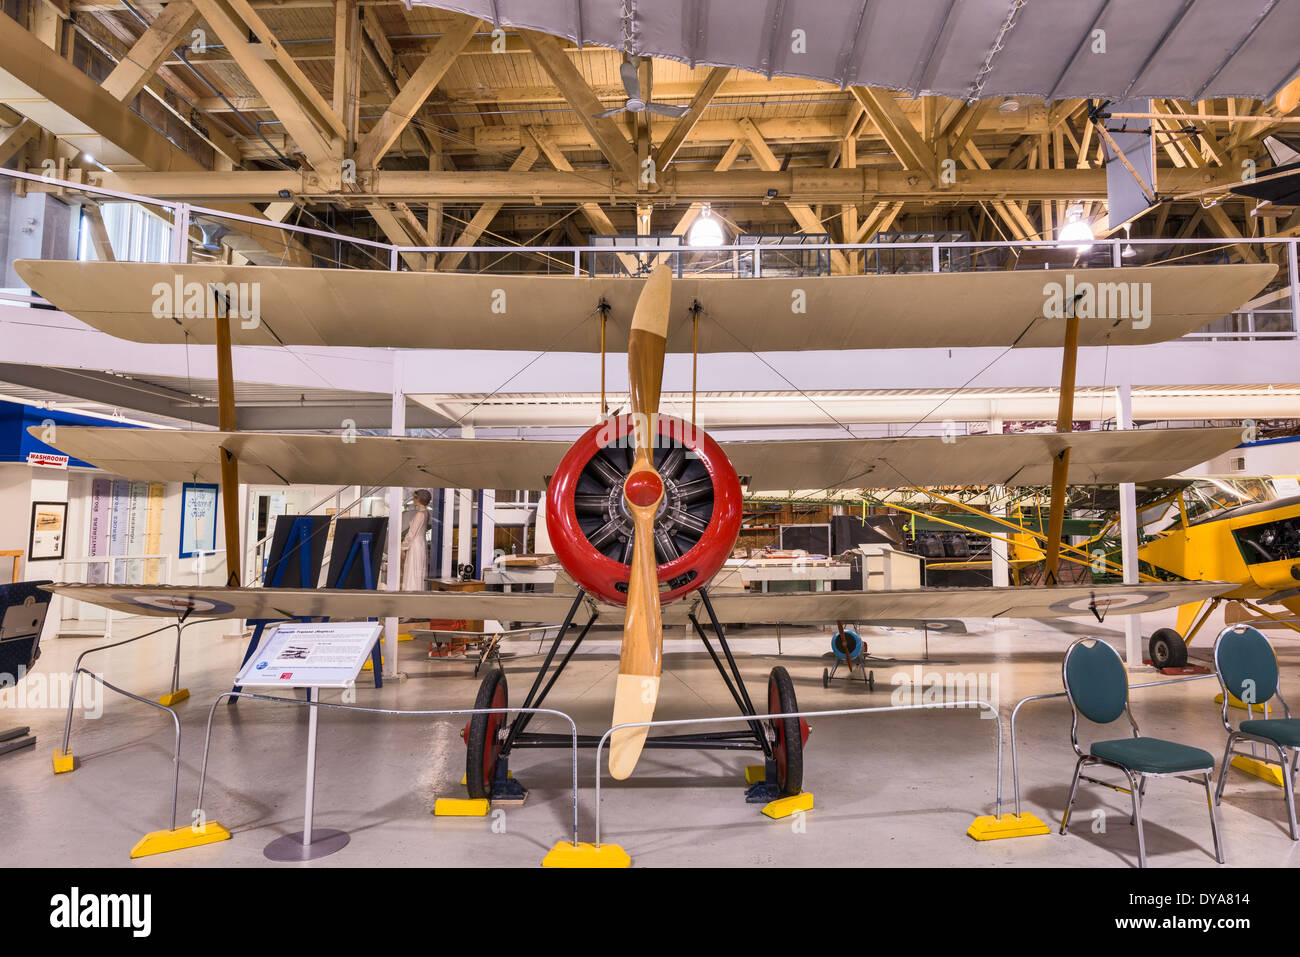 Sopwith Triplane, WW1 fighter replica at Main Hangar at Aero Space Museum of Calgary, Calgary, Alberta, Canada - Stock Image